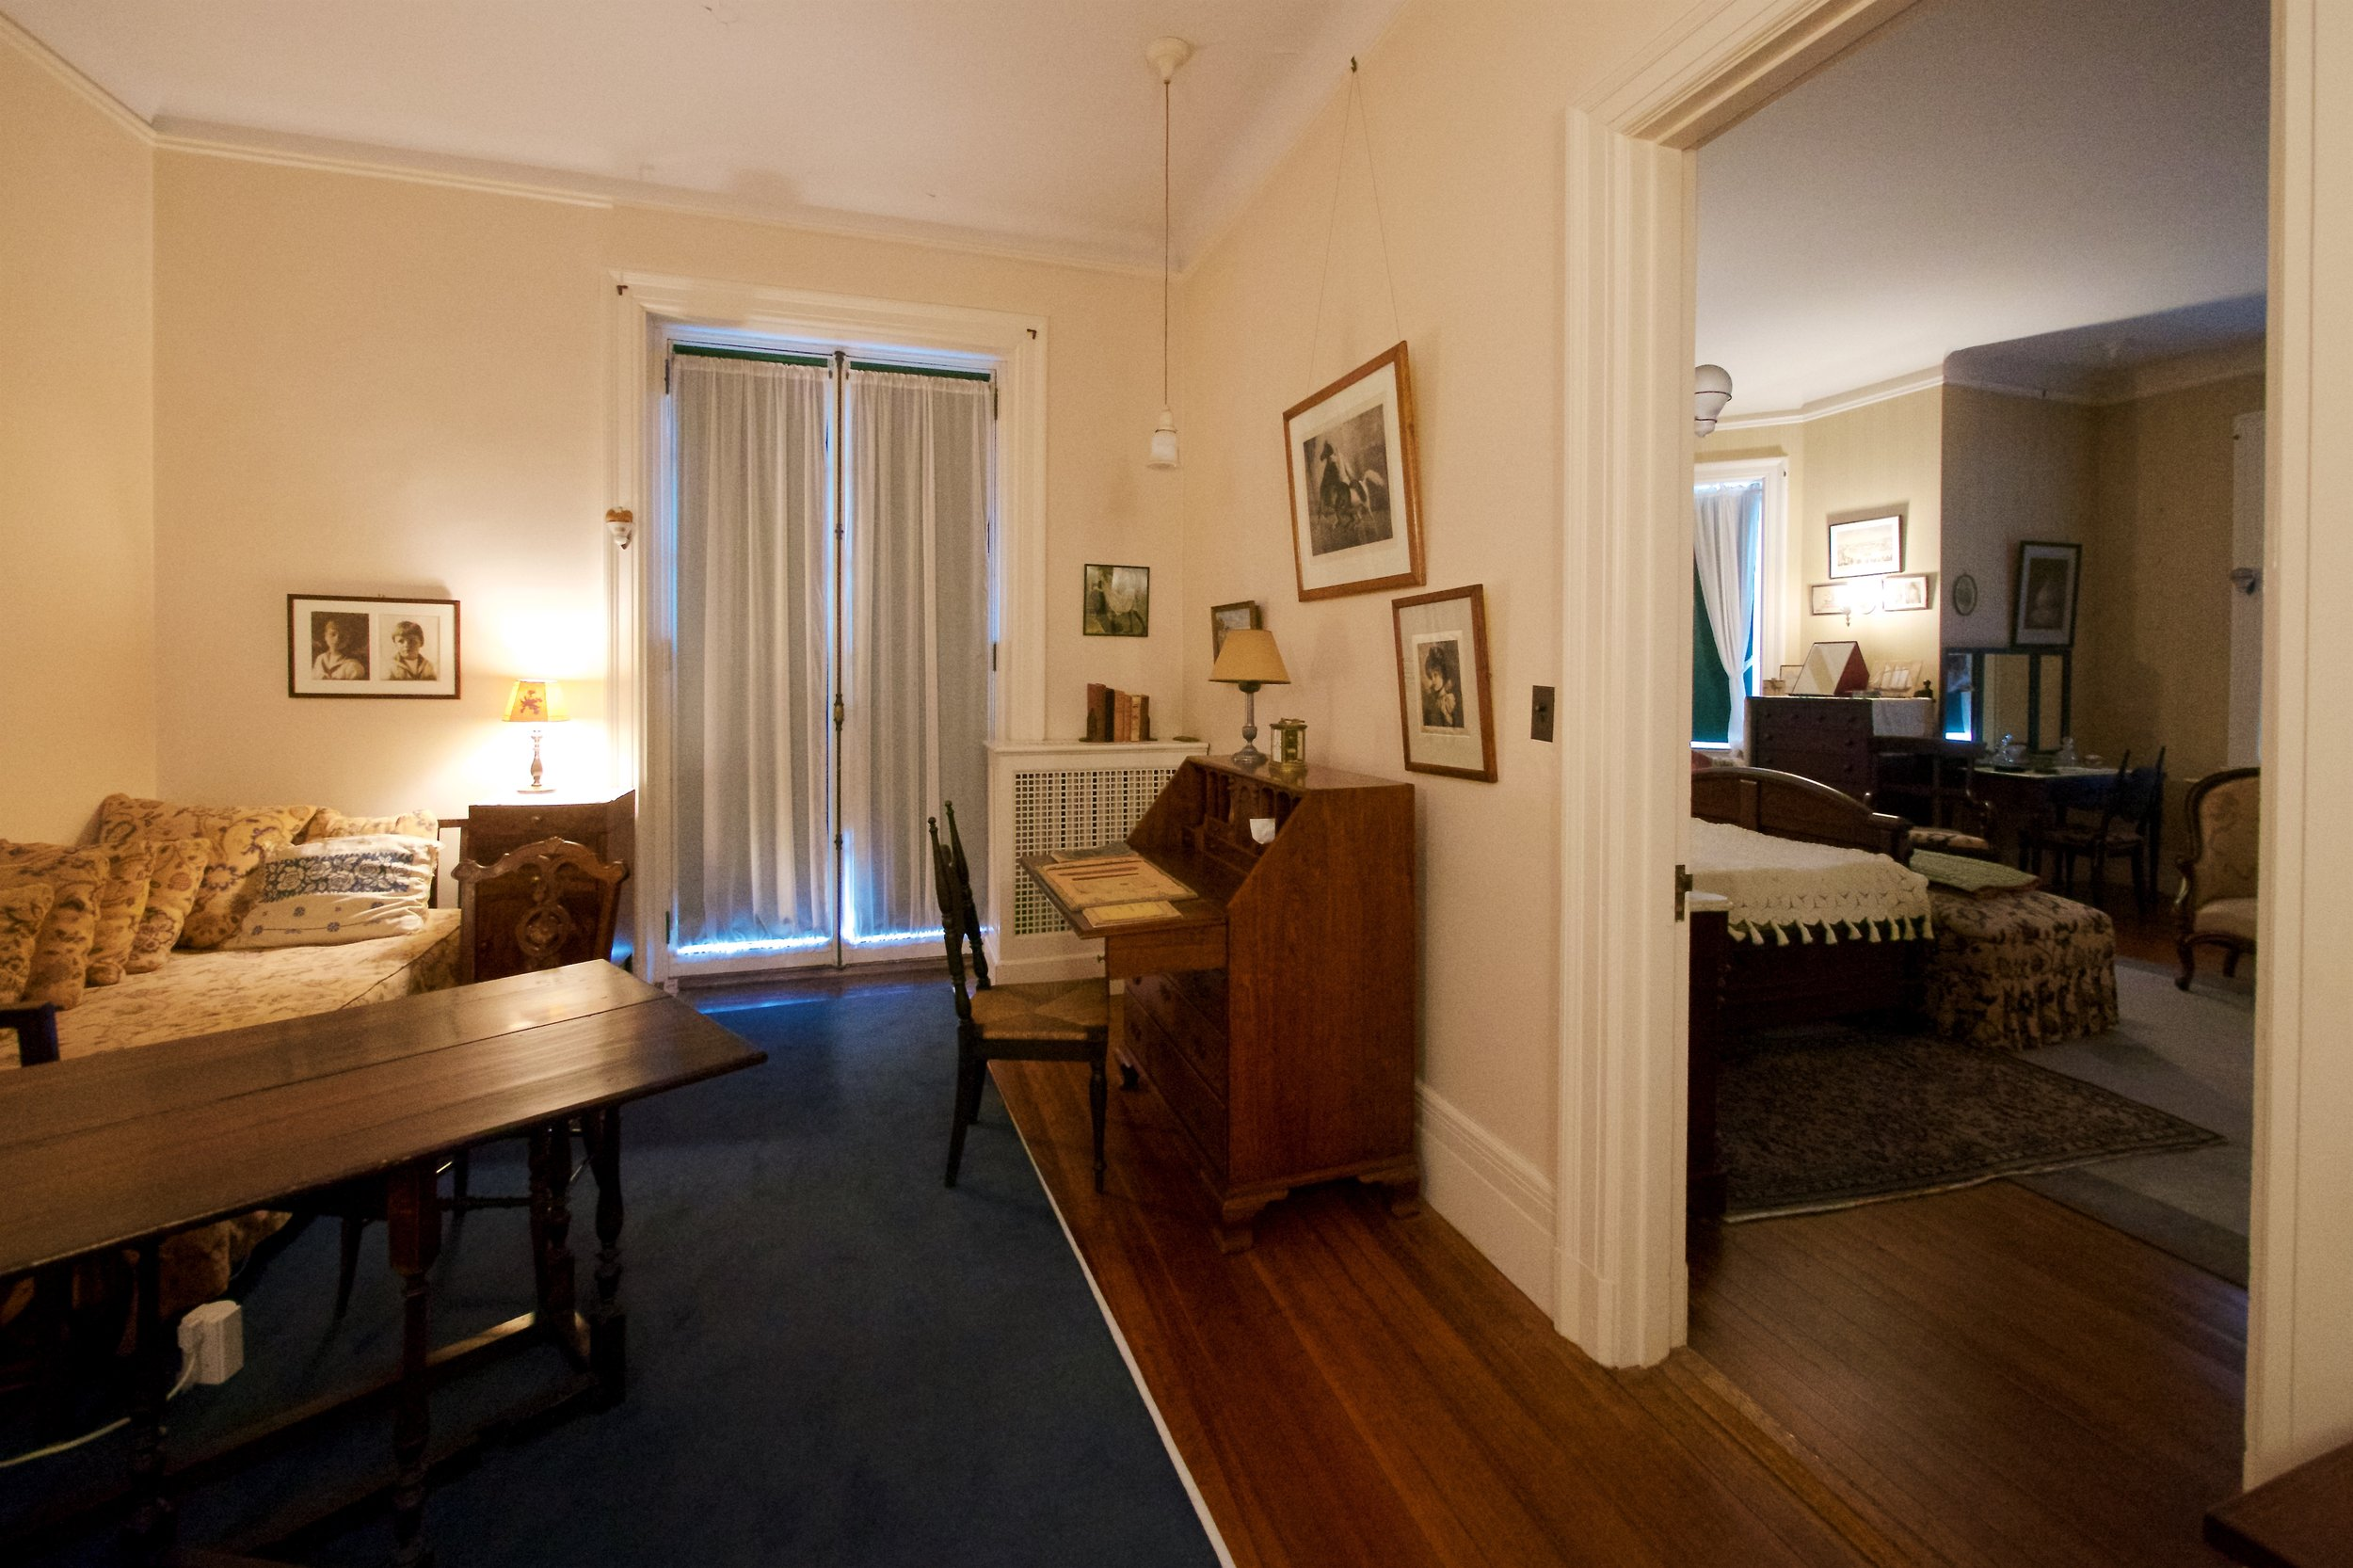 Eleanor's room, FDR's through the connecting door